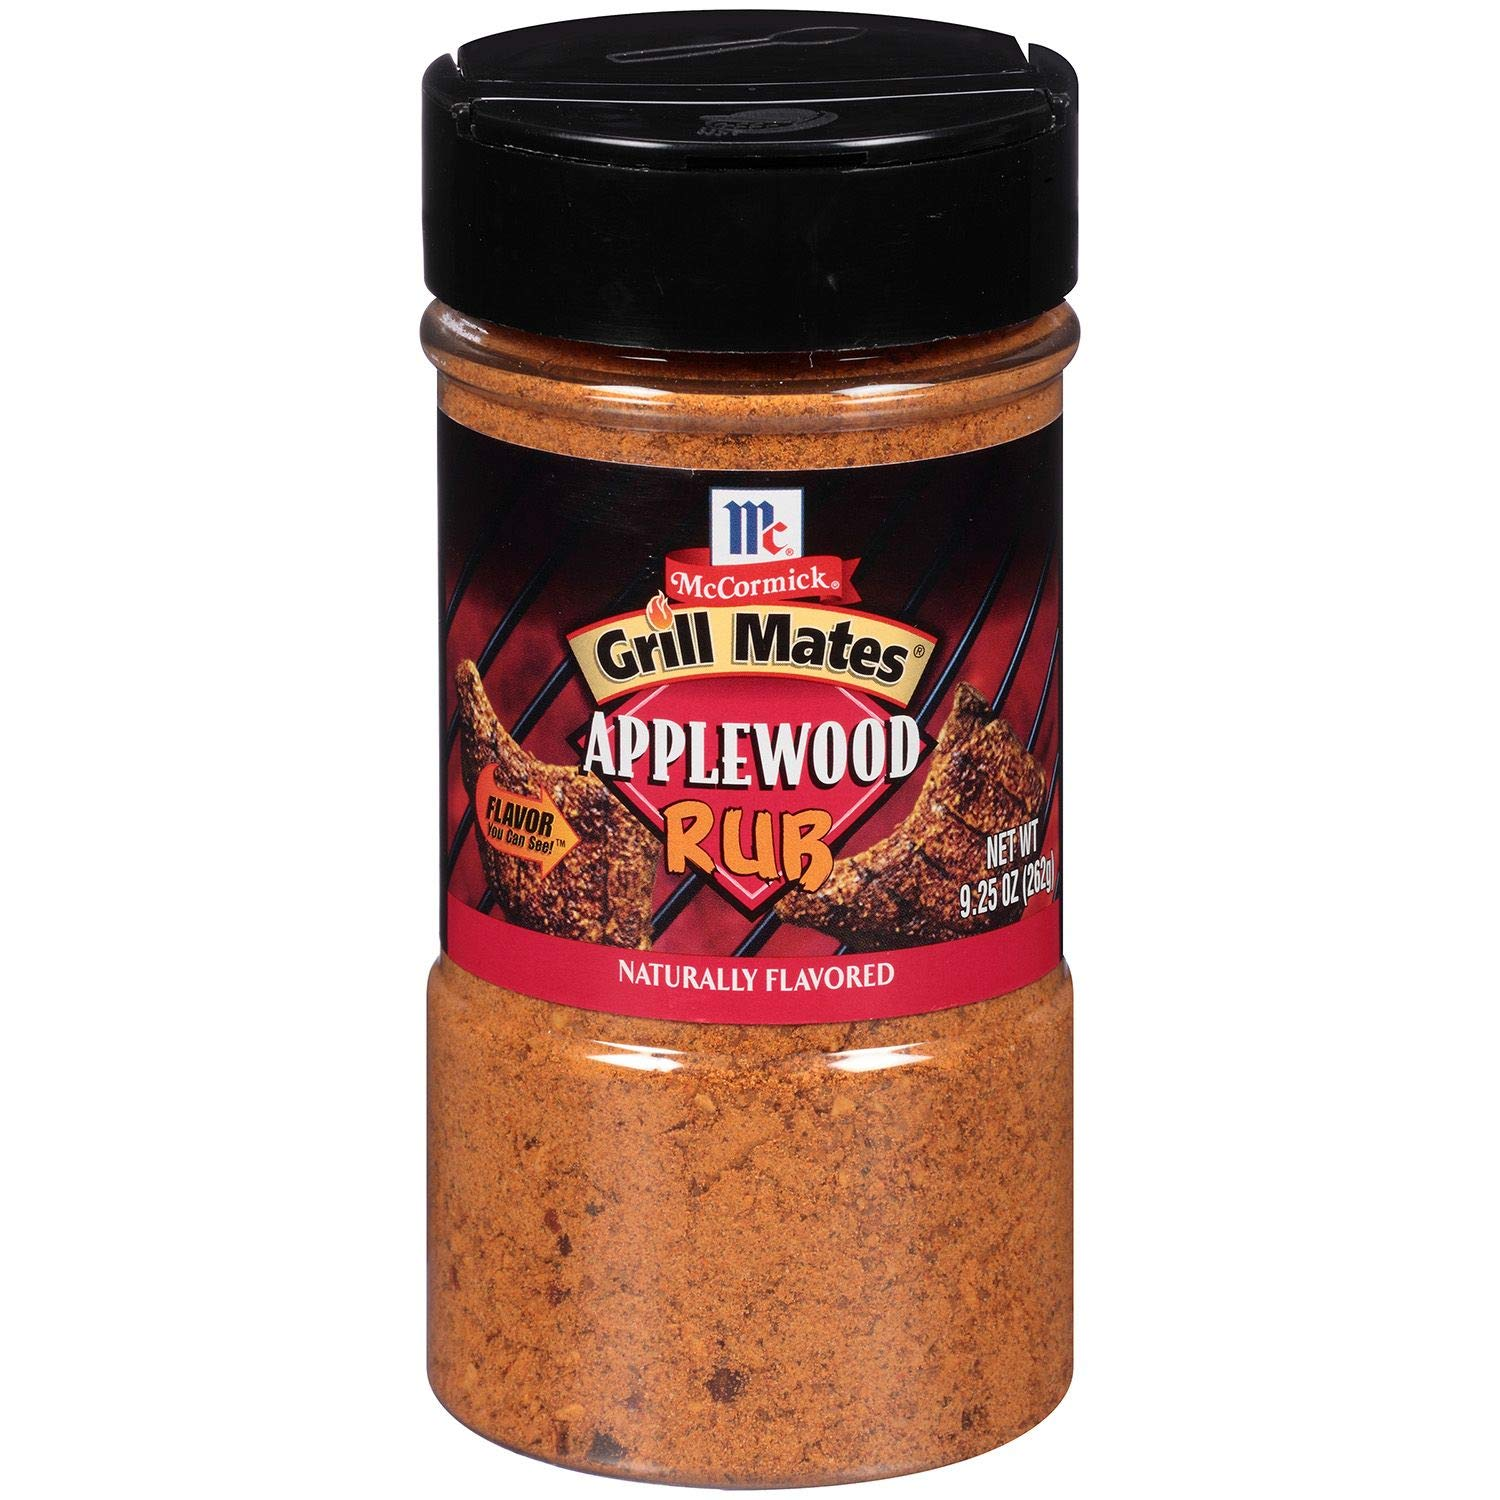 McCormick Grill Mates Applewood Rub - 9.25 oz. (Pack of 6)